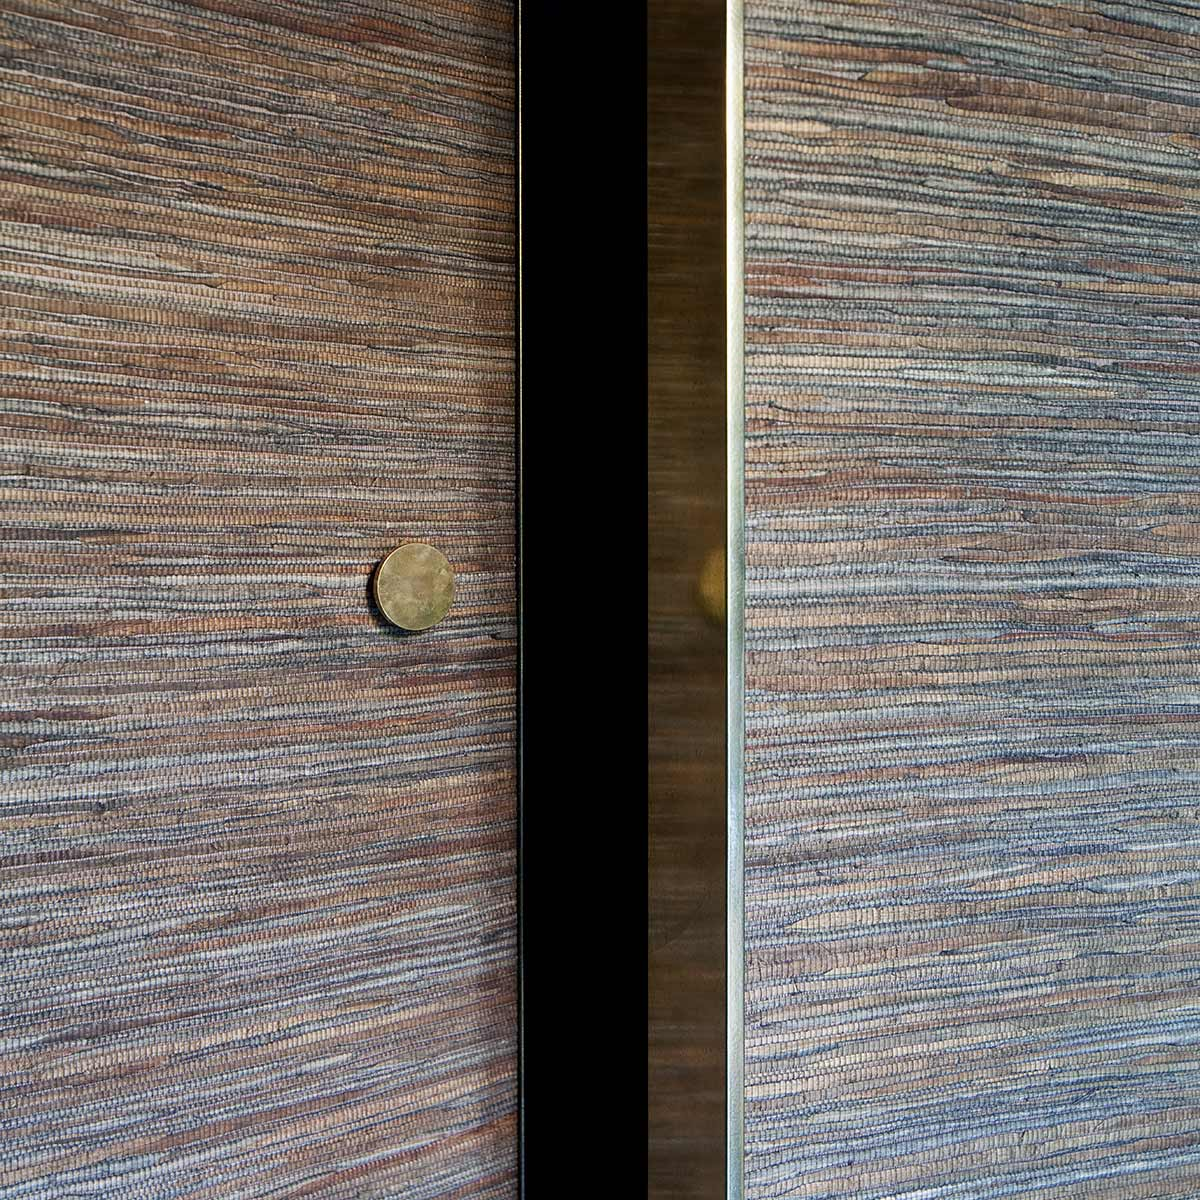 kickoffice casa n wardrobe door brass